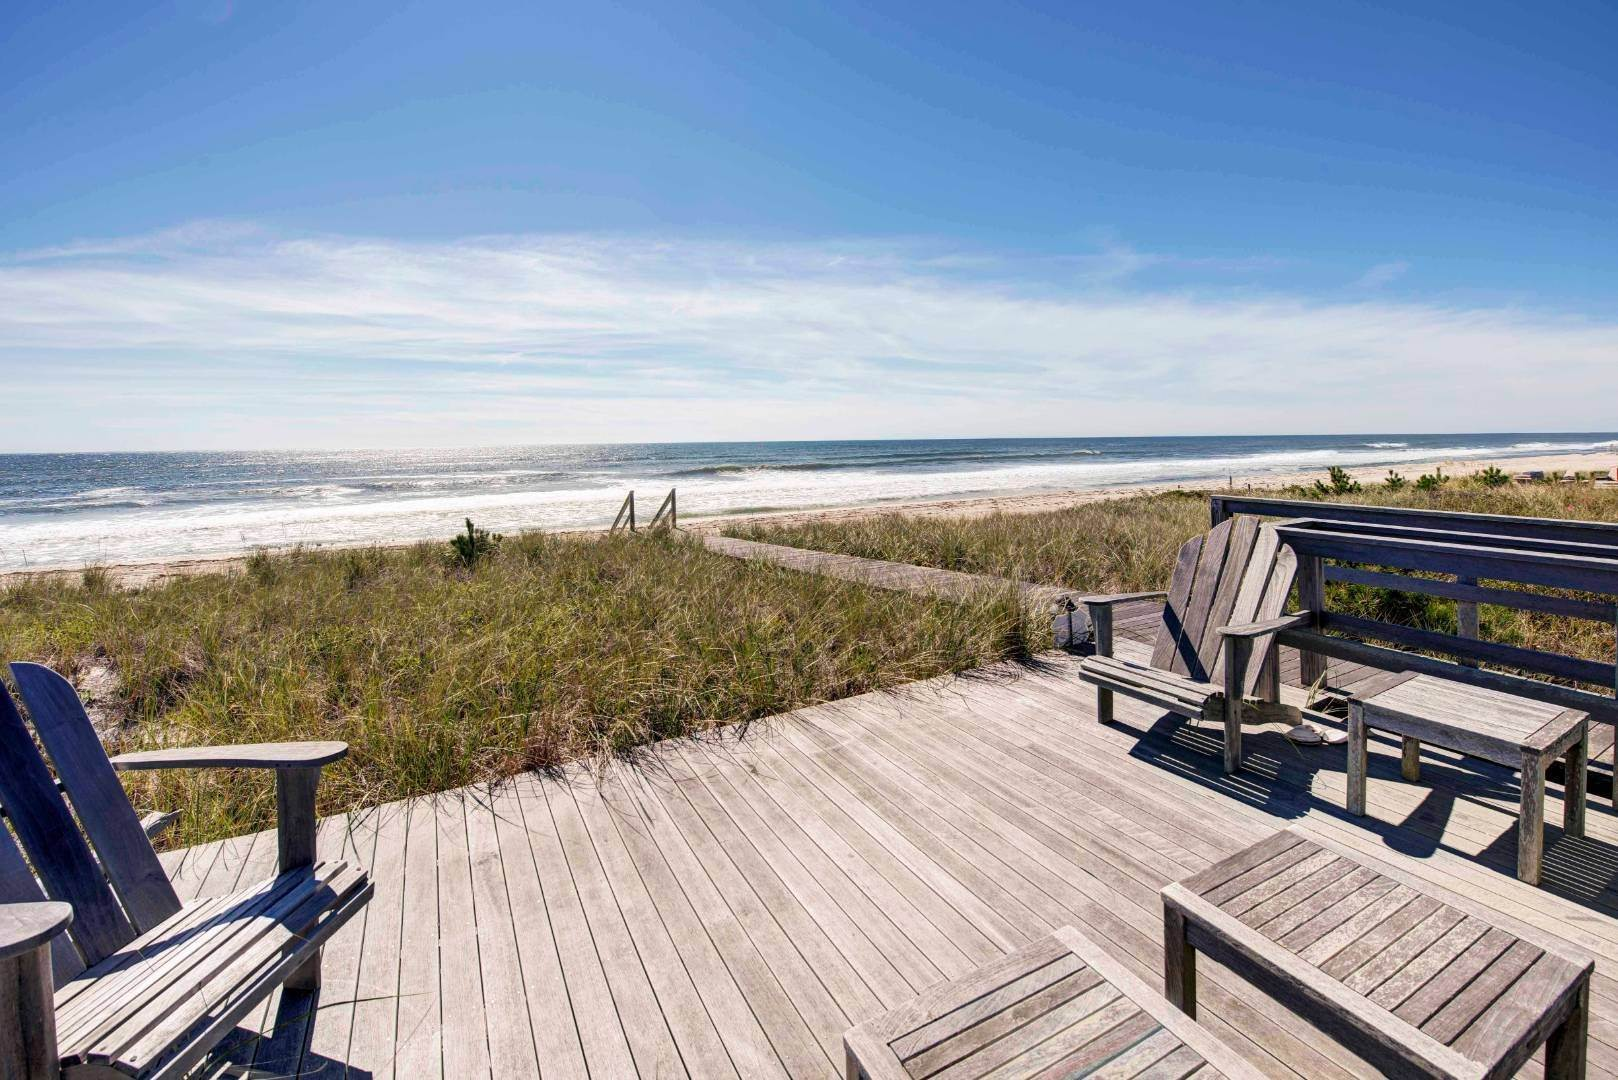 Single Family Home por un Venta en Luxury Quogue Oceanfront 148 Dune Rd, Quogue Village, NY 11959